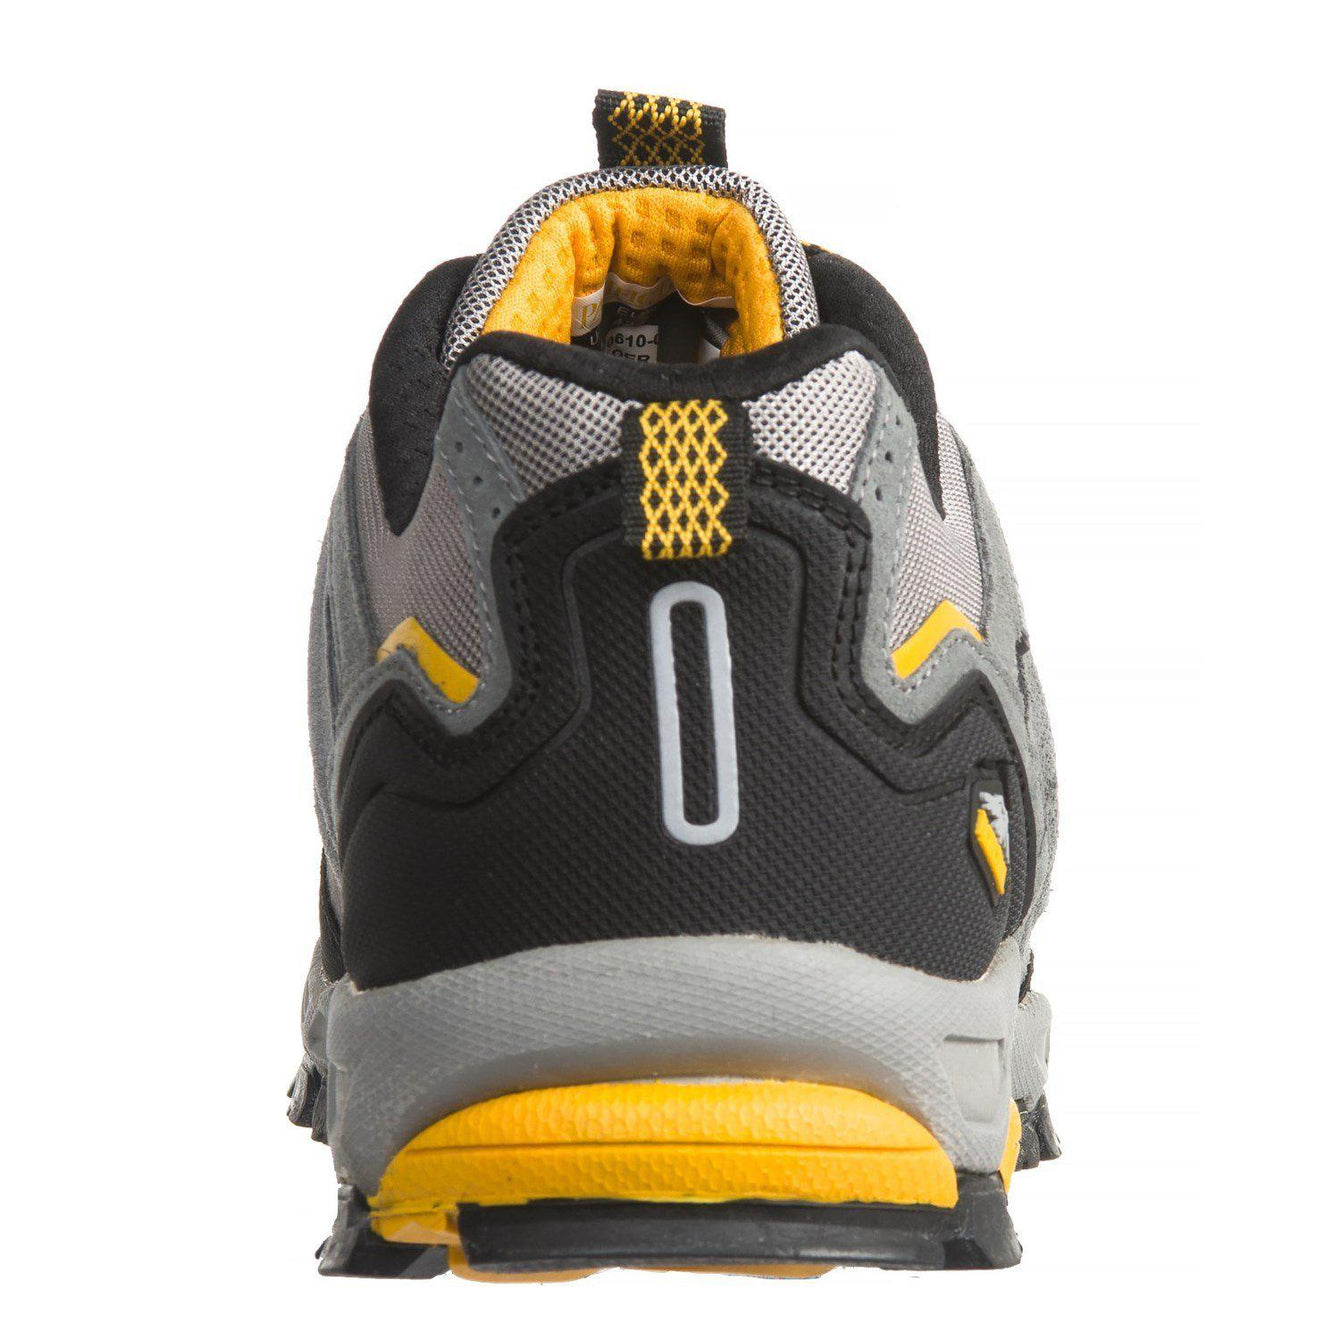 Pacific Trail Men's Cinder Trail Running Shoe  Pacific Trail  kick-it-shoe-outlet.myshopify.com Kick-it Shoe Outlet Shoes Cheap